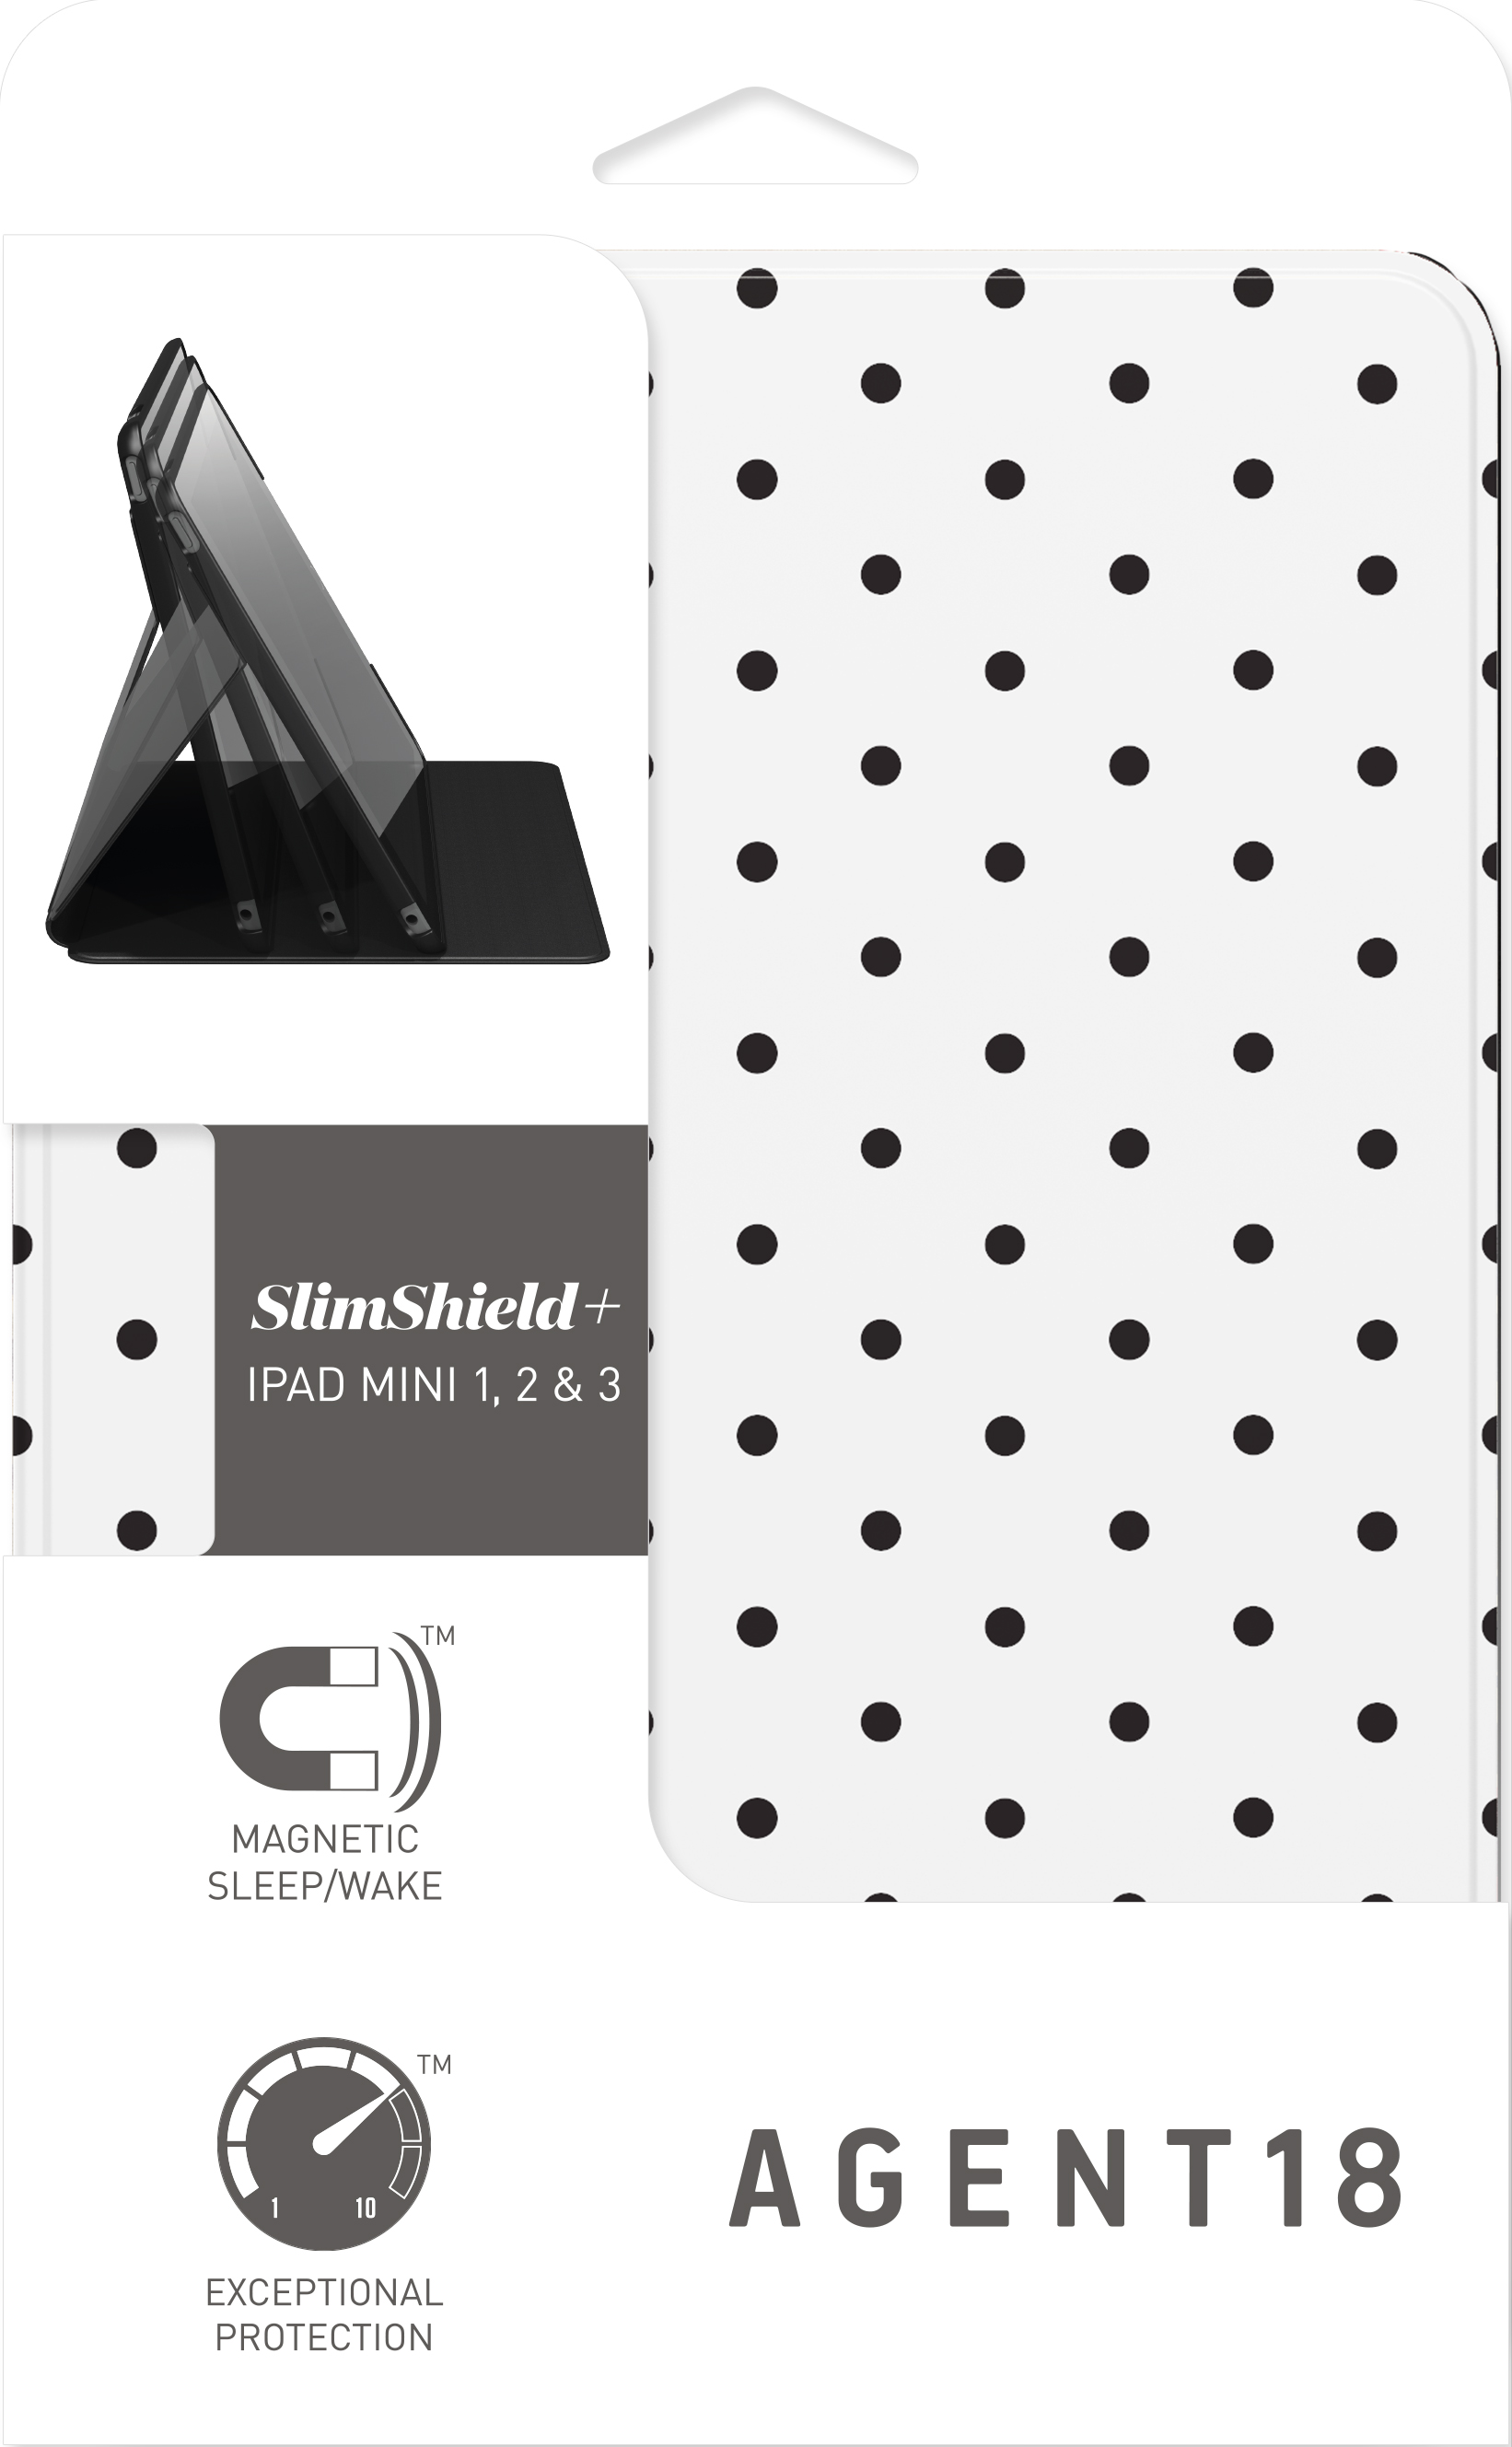 iPadmini3-Packaging-Rendering-ManhattanDots.jpg